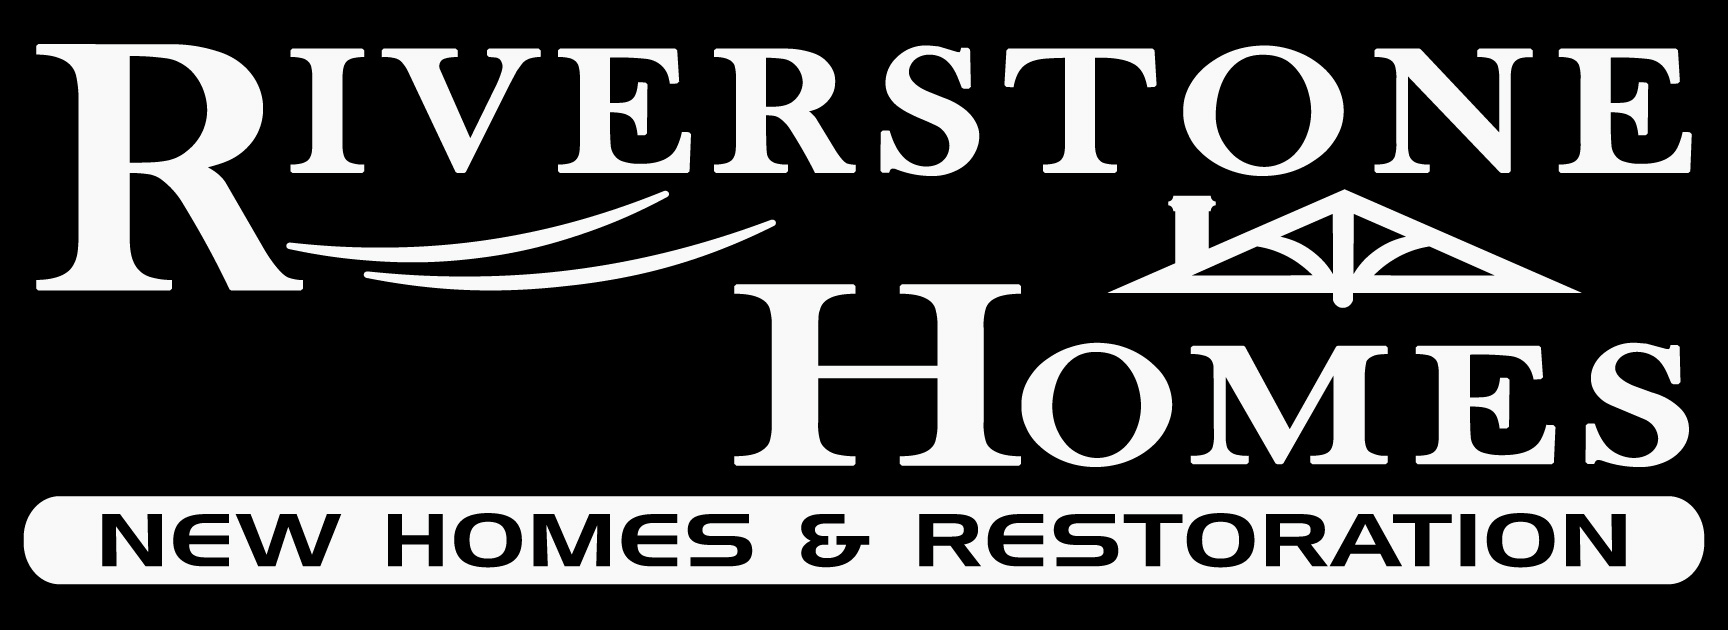 Riverstone Homes